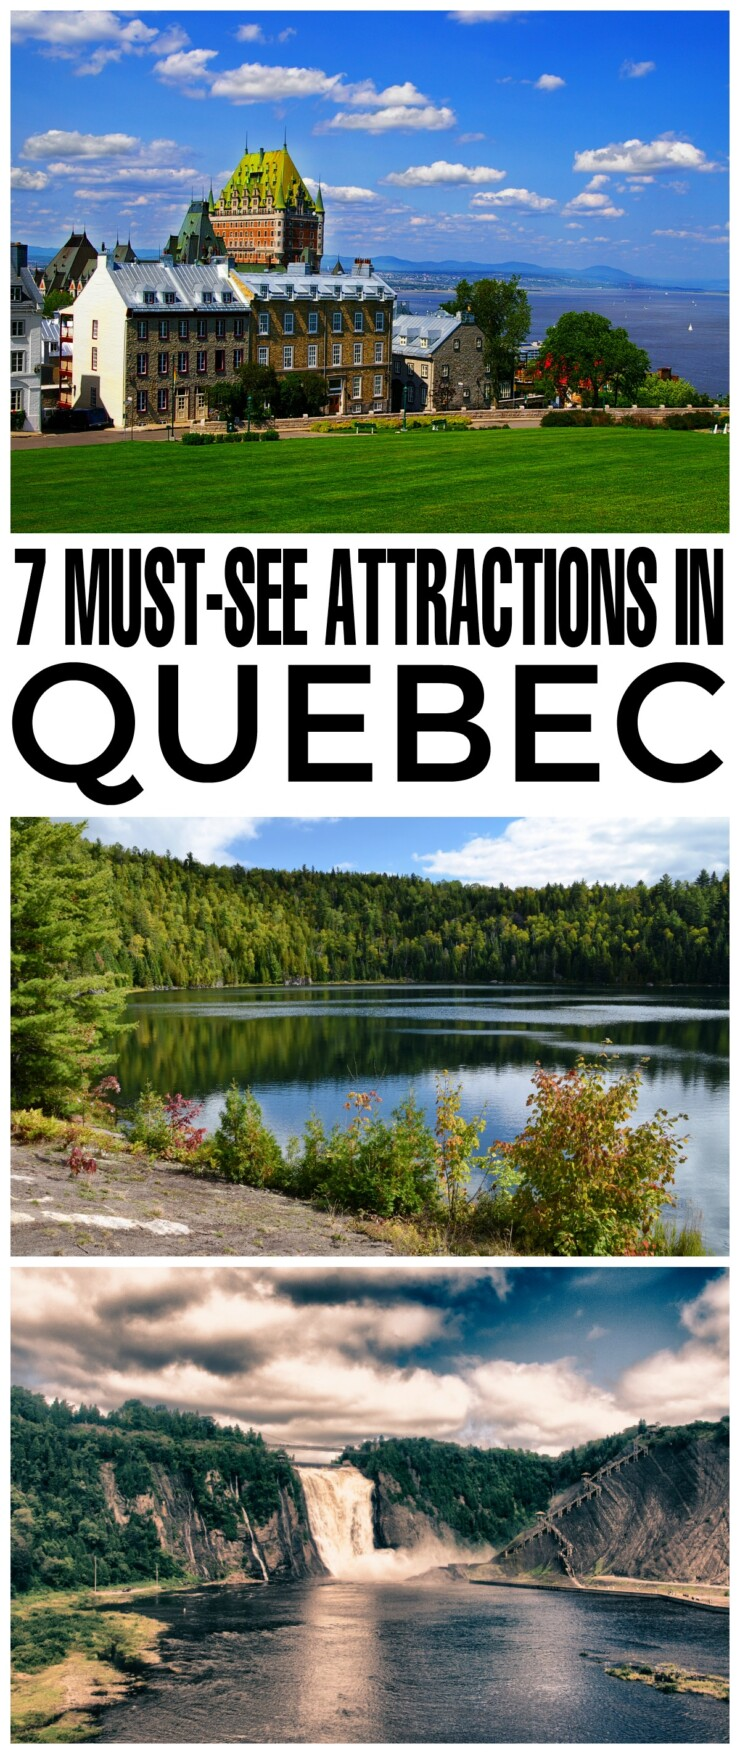 7 Must-See Attractions in Quebec, Canada